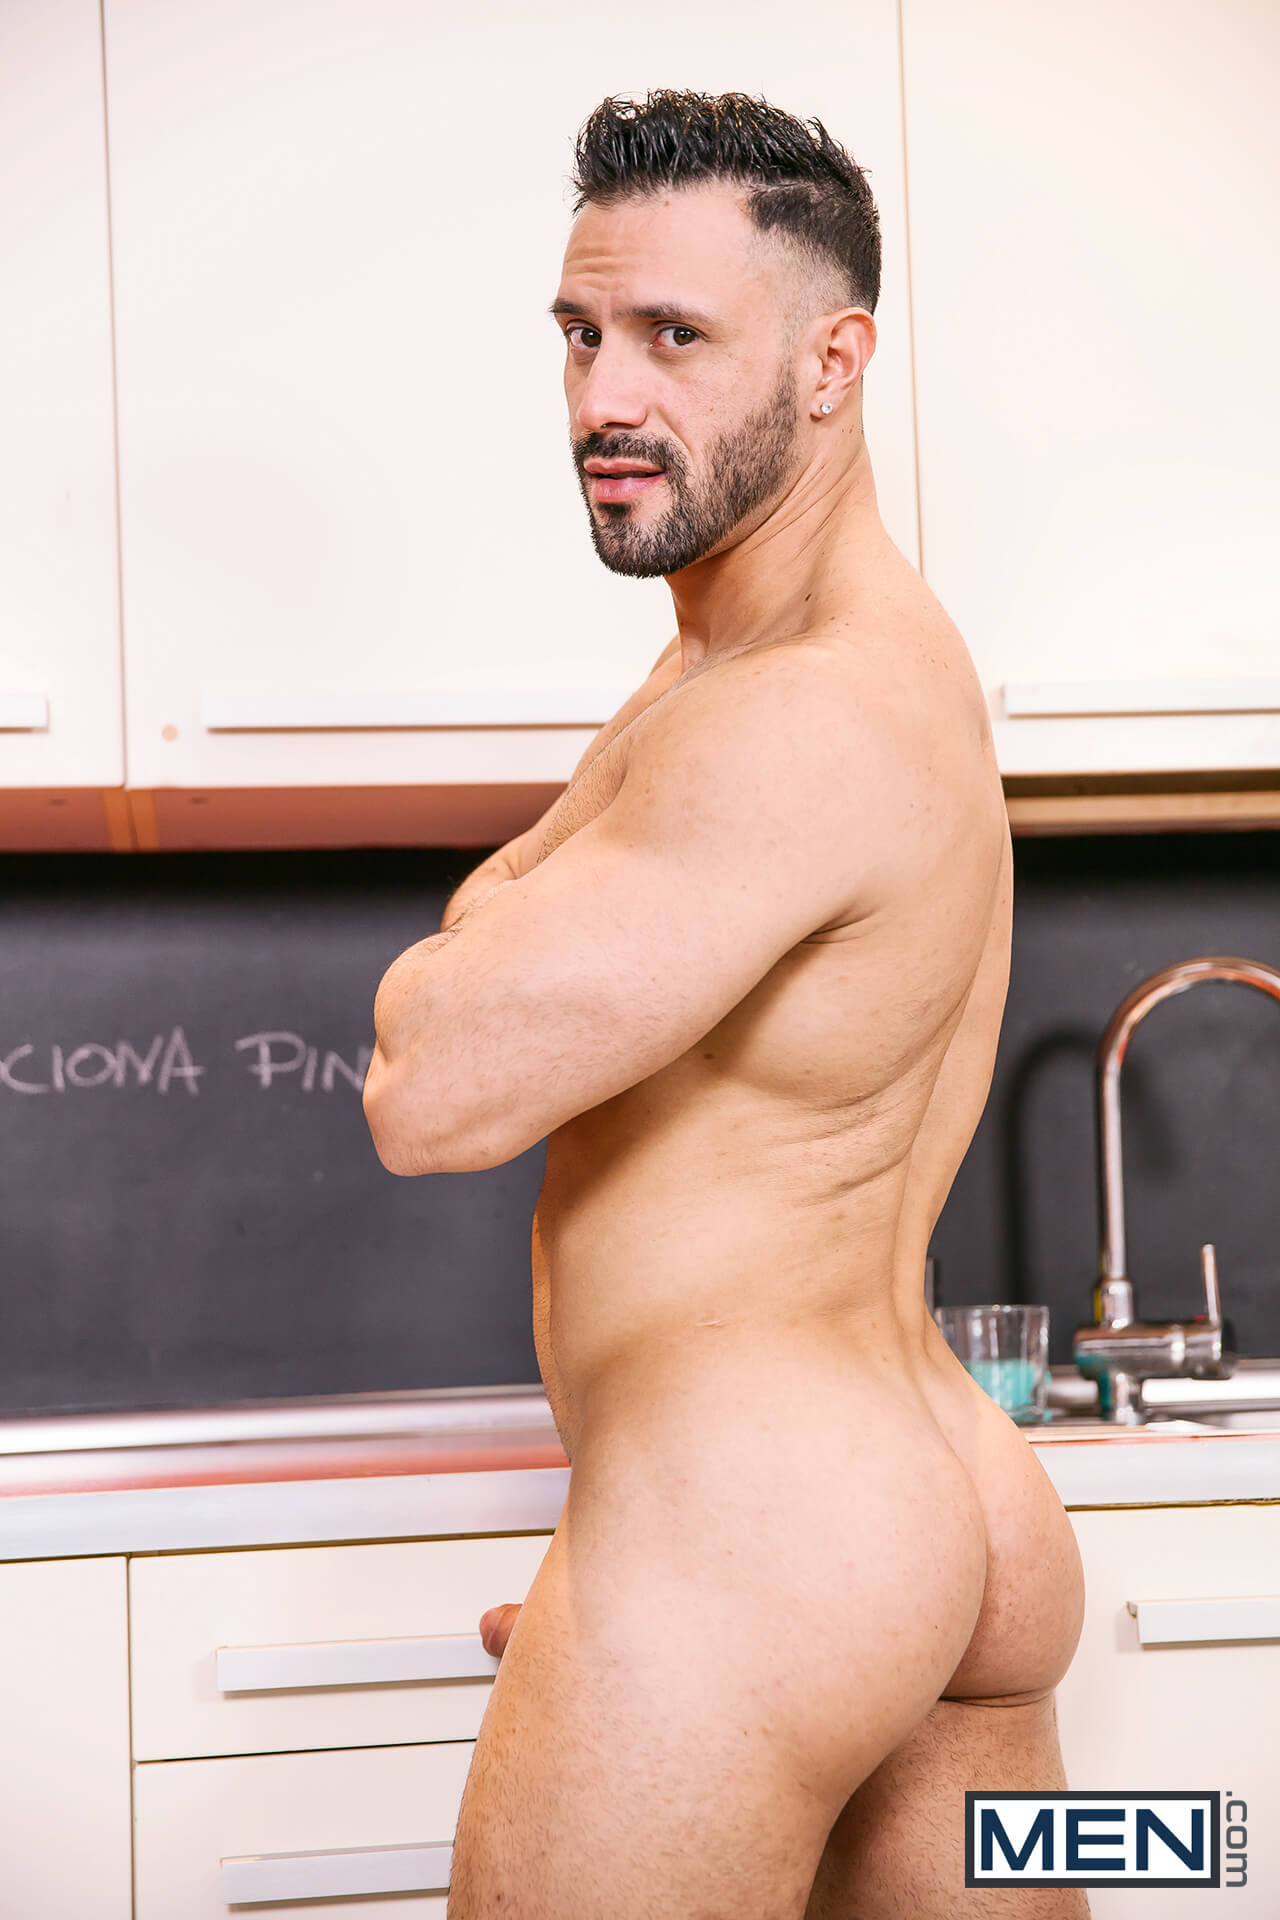 men drill my hole erase and rewind part 3 flex jessy ares gay porn blog image 7